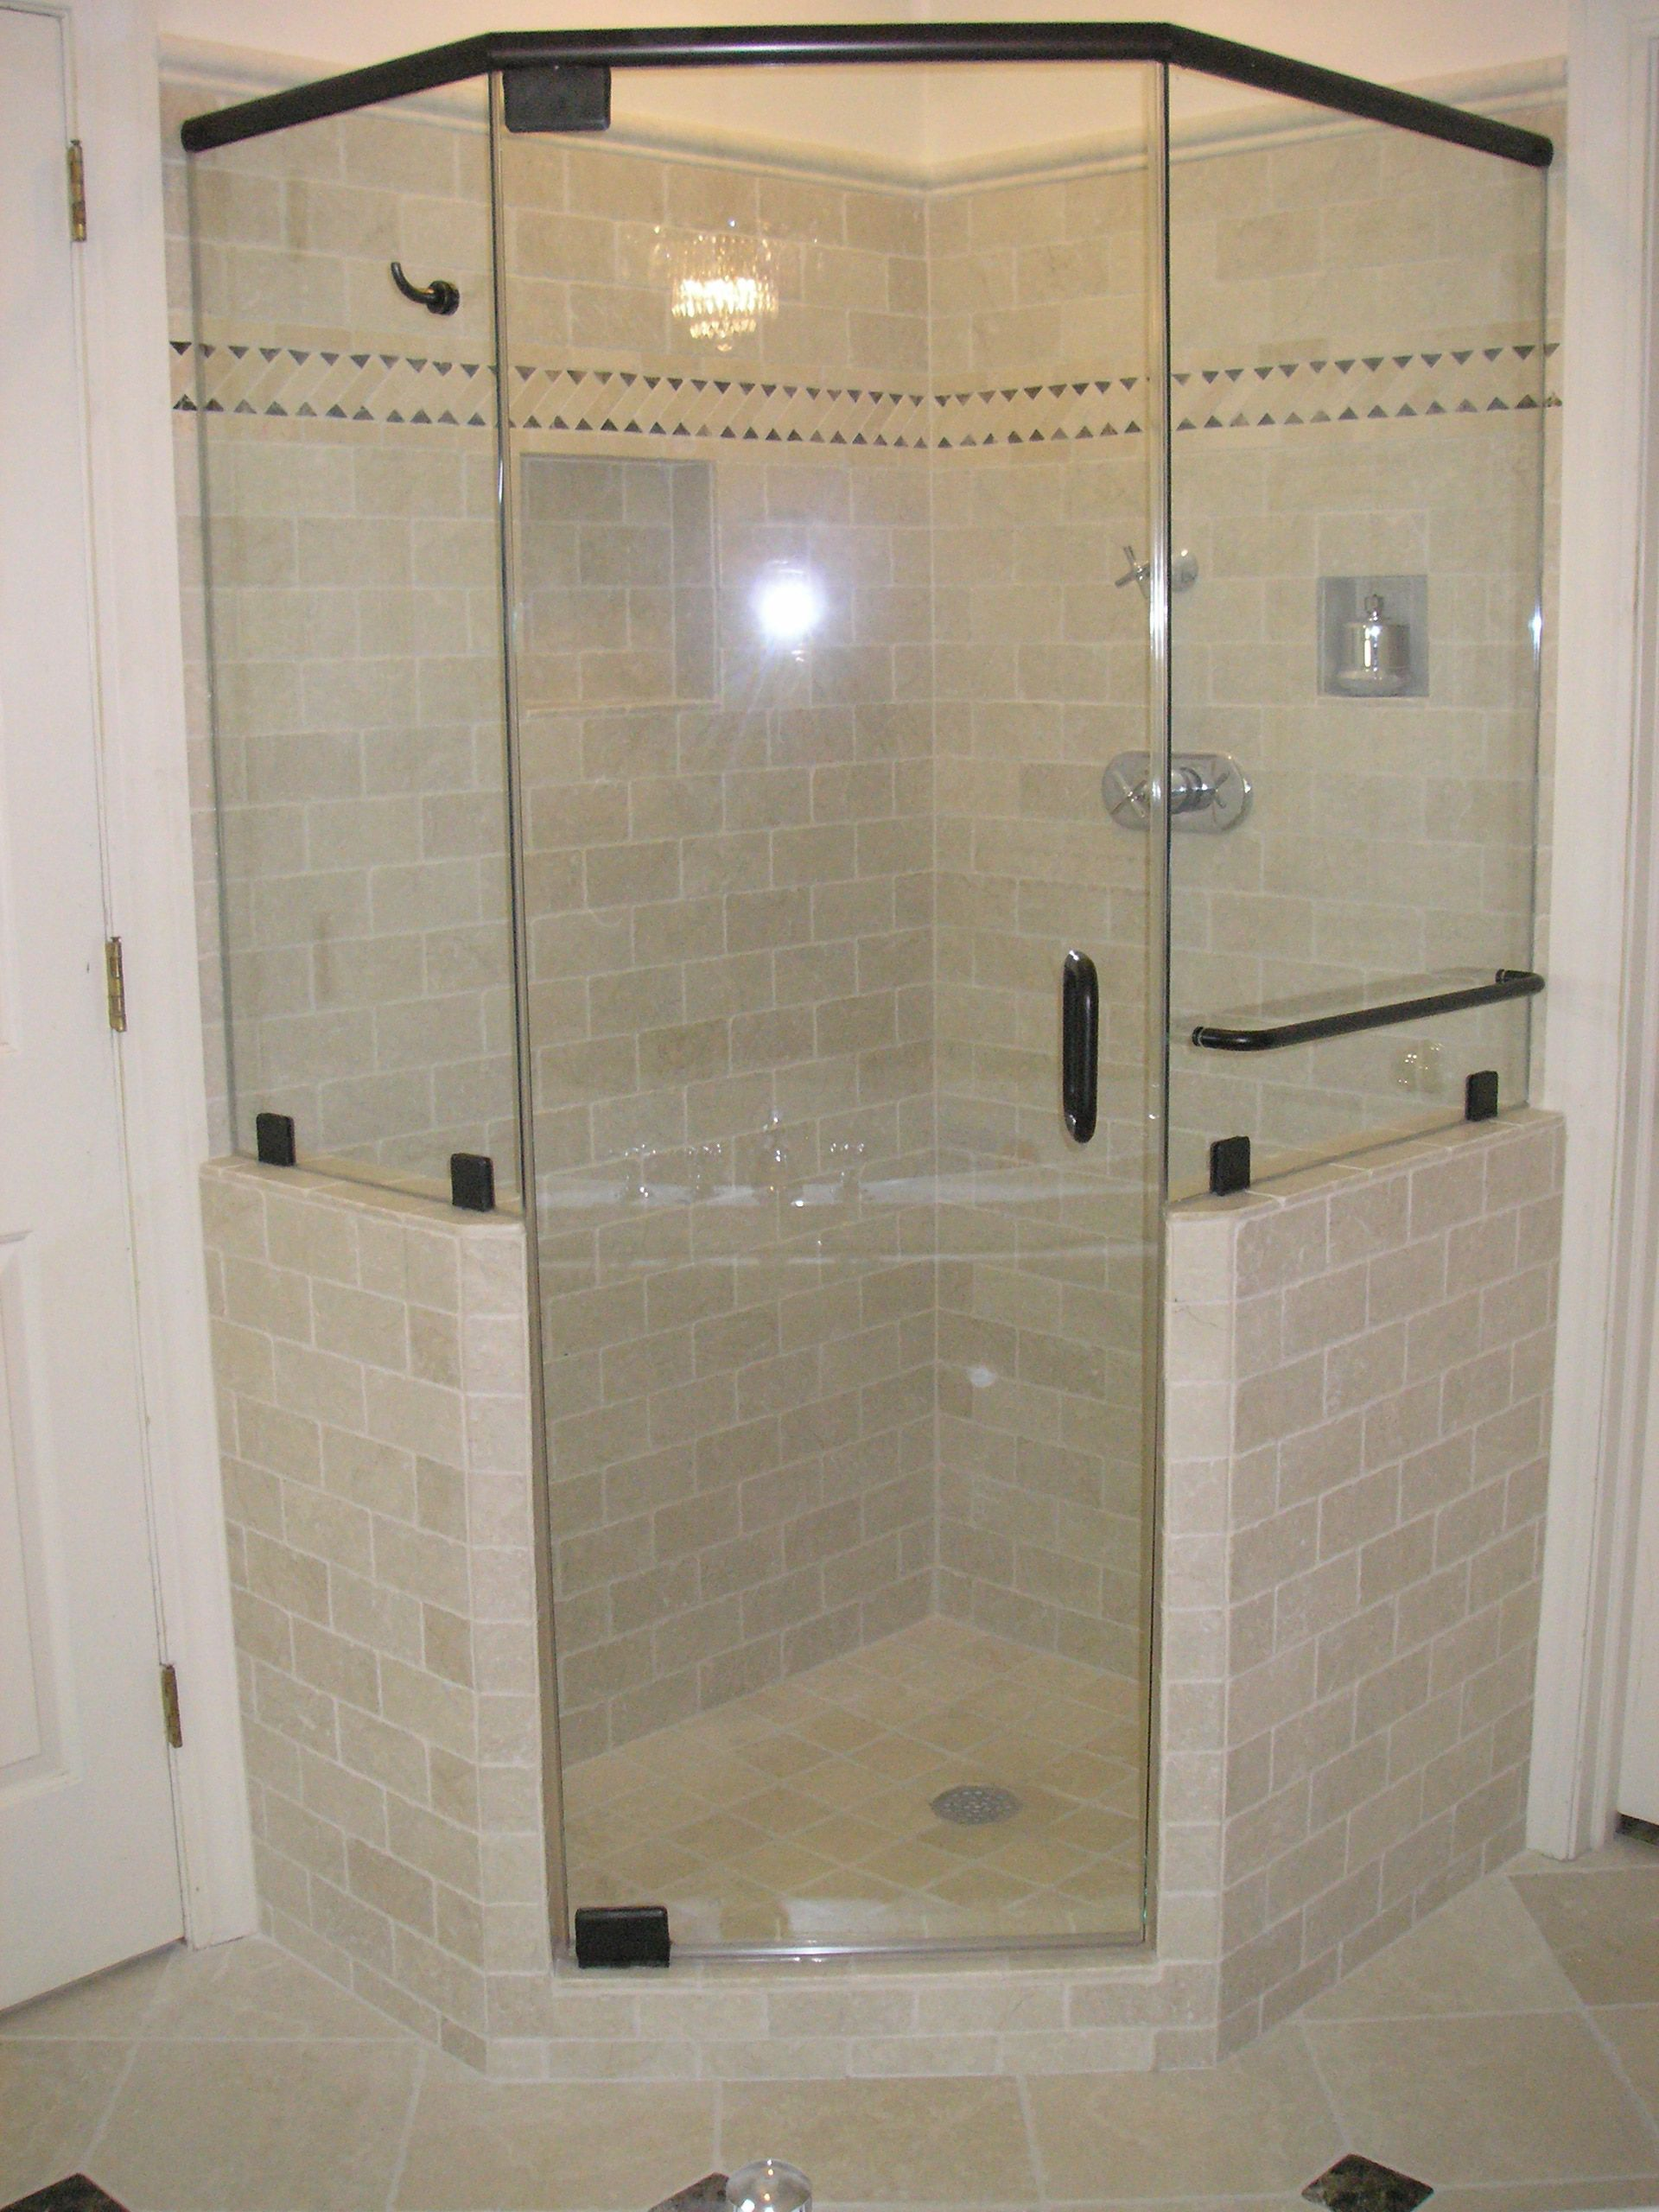 Bathroom shower doors frameless - Frameless Quadrant Shower Enclosure Have More Elegant Look Than Fully Framed Doors And They Can